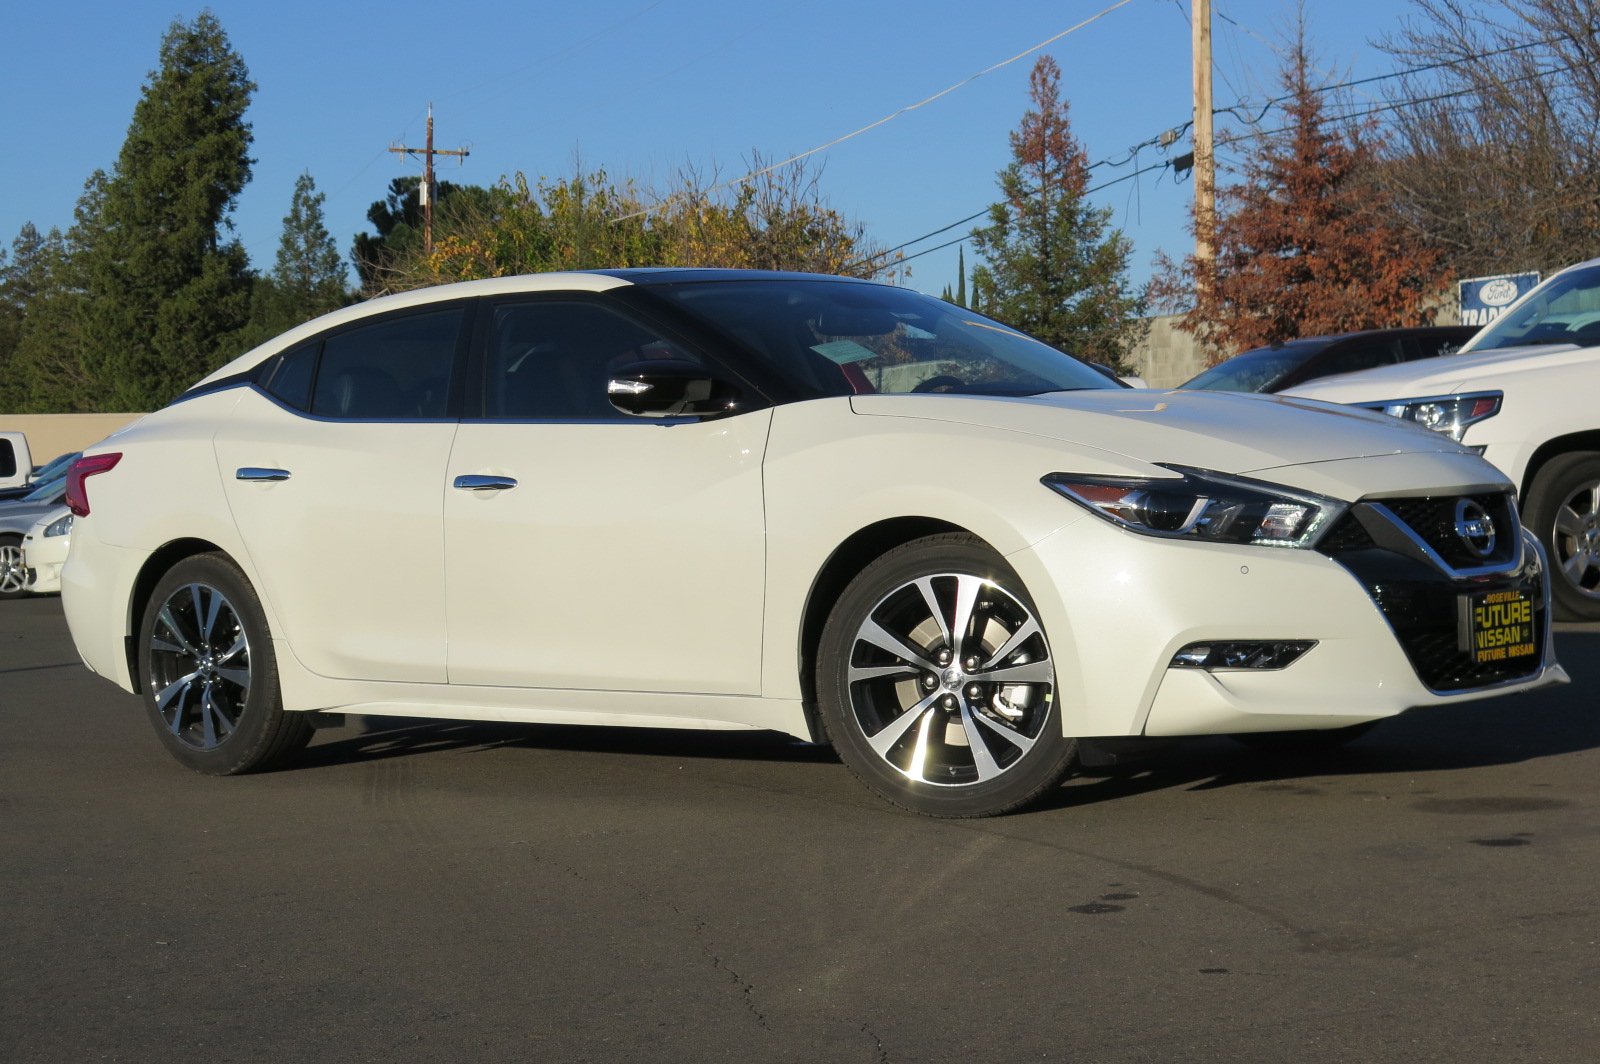 Nissan Certified Pre Owned >> New 2018 Nissan Maxima Platinum 4dr Car in Roseville #N45171 | Future Nissan of Roseville